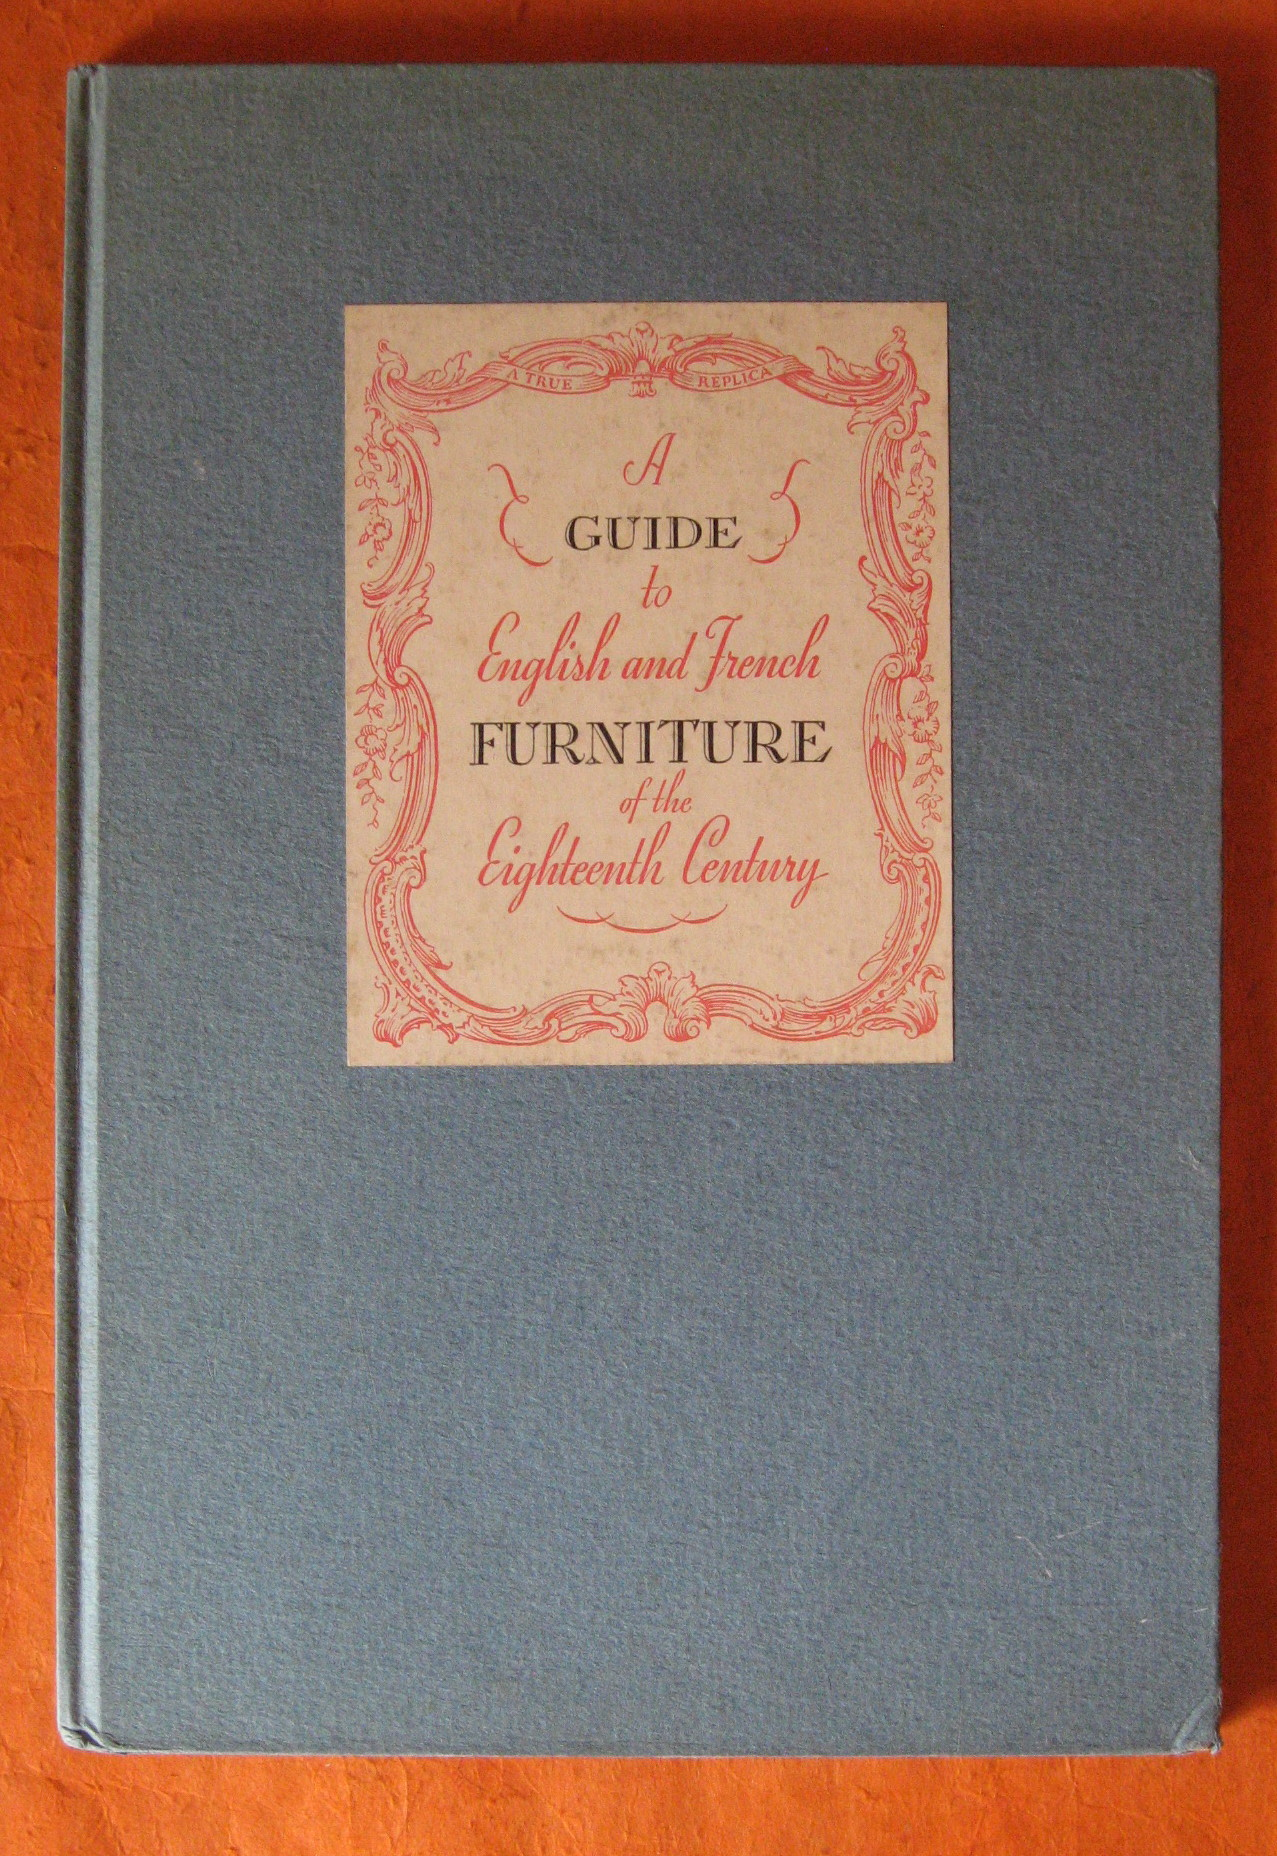 A Guide to English and French Furniture of the Eighteenth Century: A New and Unusual Treatise Regarding the Use, Manufacture and Care of Choice Reproductions, etc.